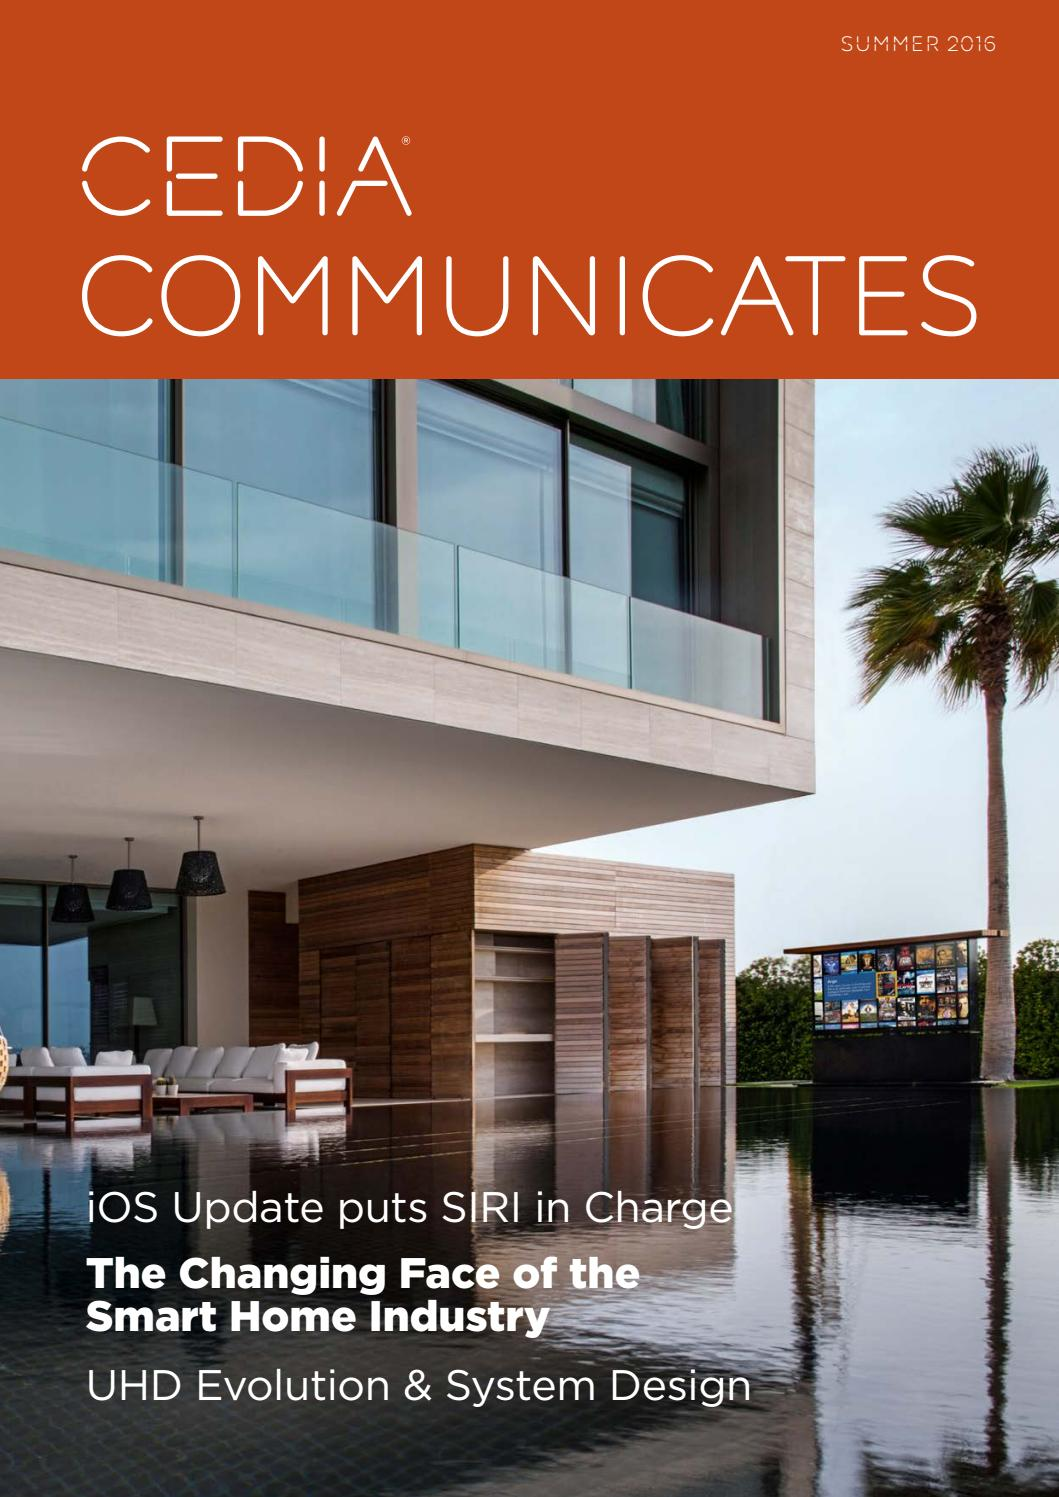 CEDIA Communicates Summer 2016 by